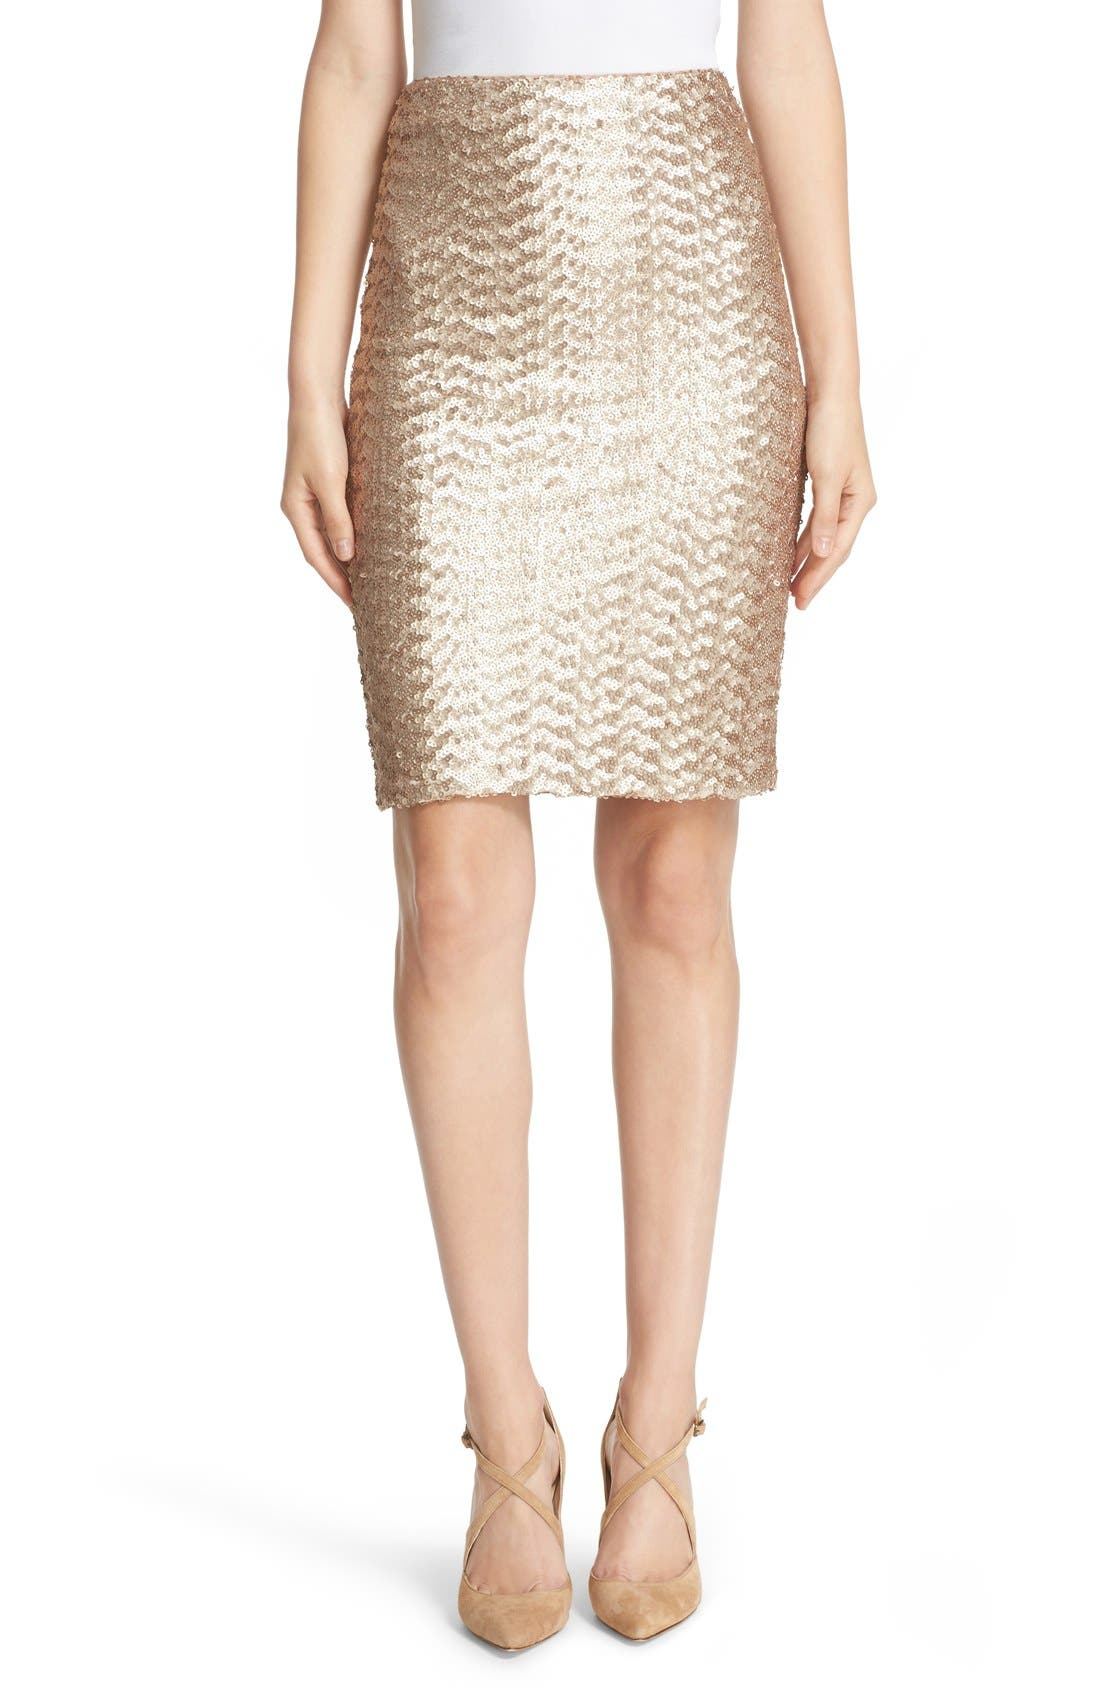 Alternate Image 1 Selected - Alice + Olivia 'Ramos' Sequin Pencil Skirt